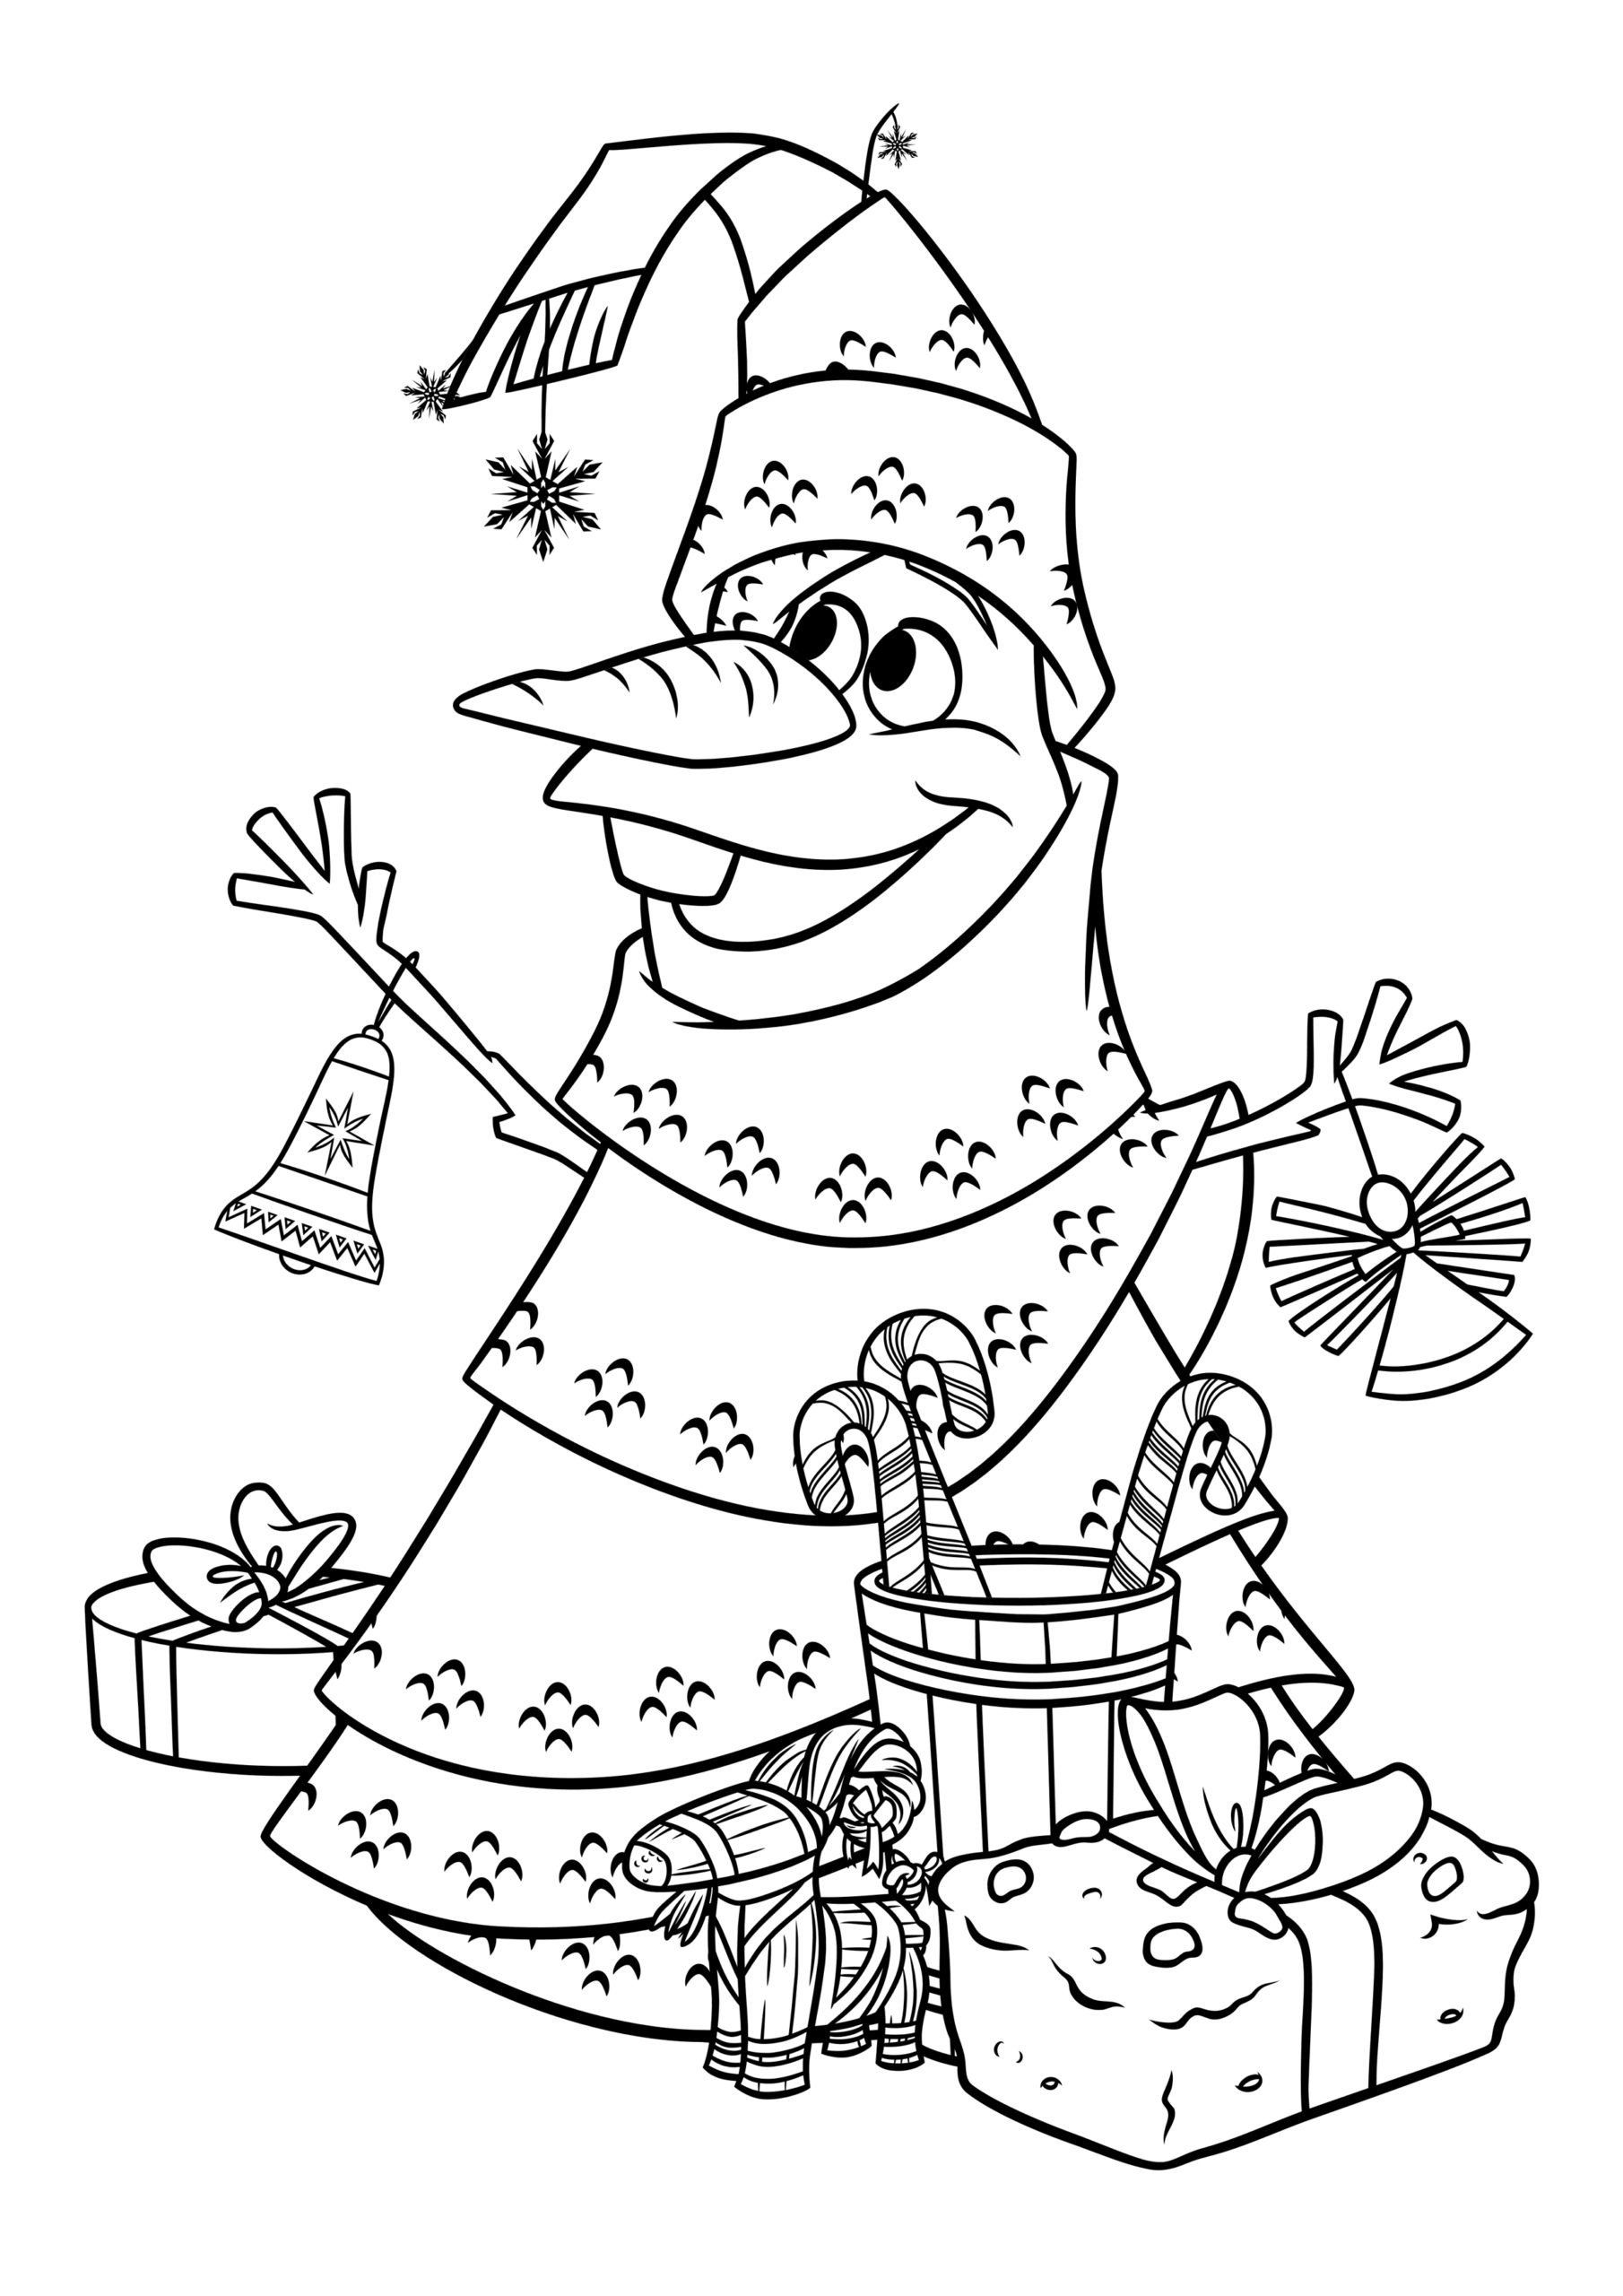 Disney Christmas Coloring Pages Best Coloring Pages For Kids Frozen Coloring Pages Disney Coloring Pages Elsa Coloring Pages [ 2560 x 1810 Pixel ]